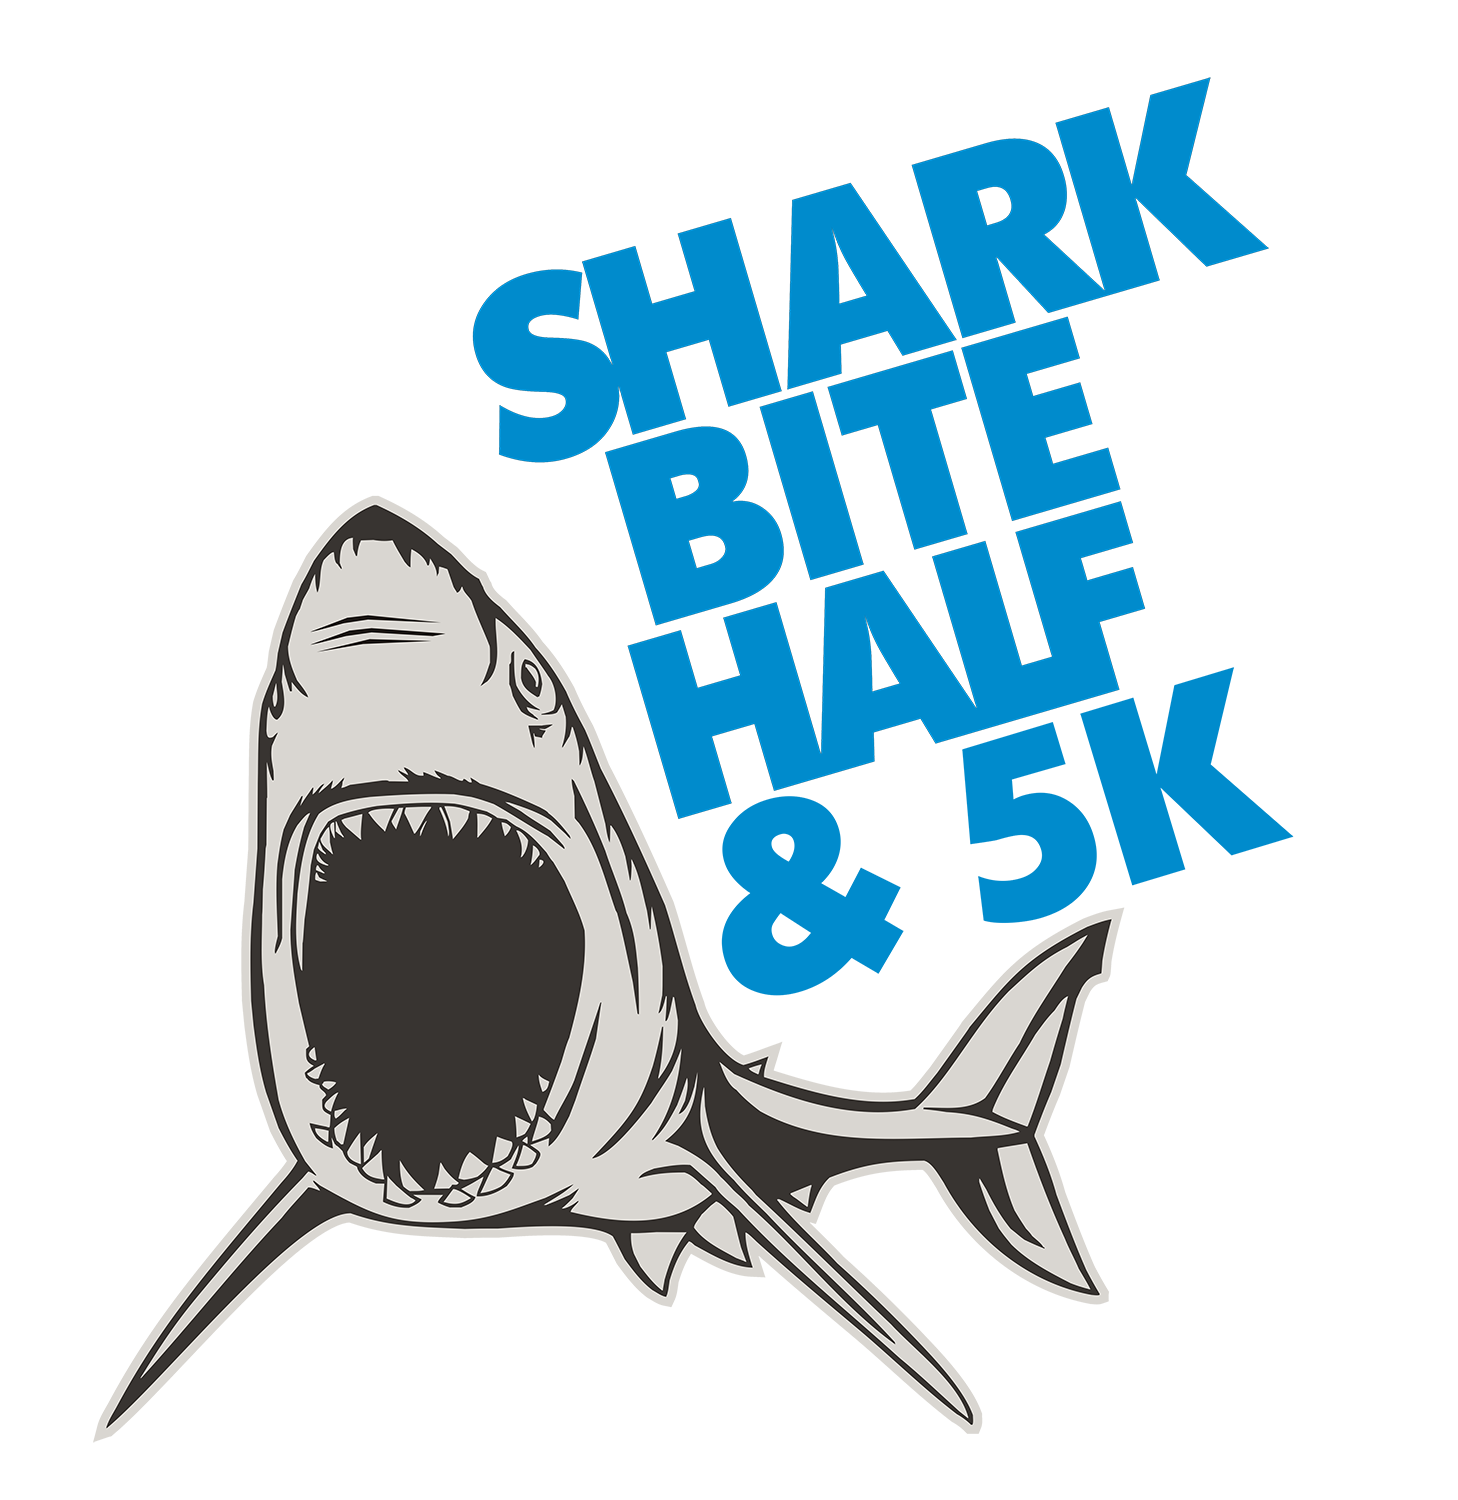 Shark Bite half Logo